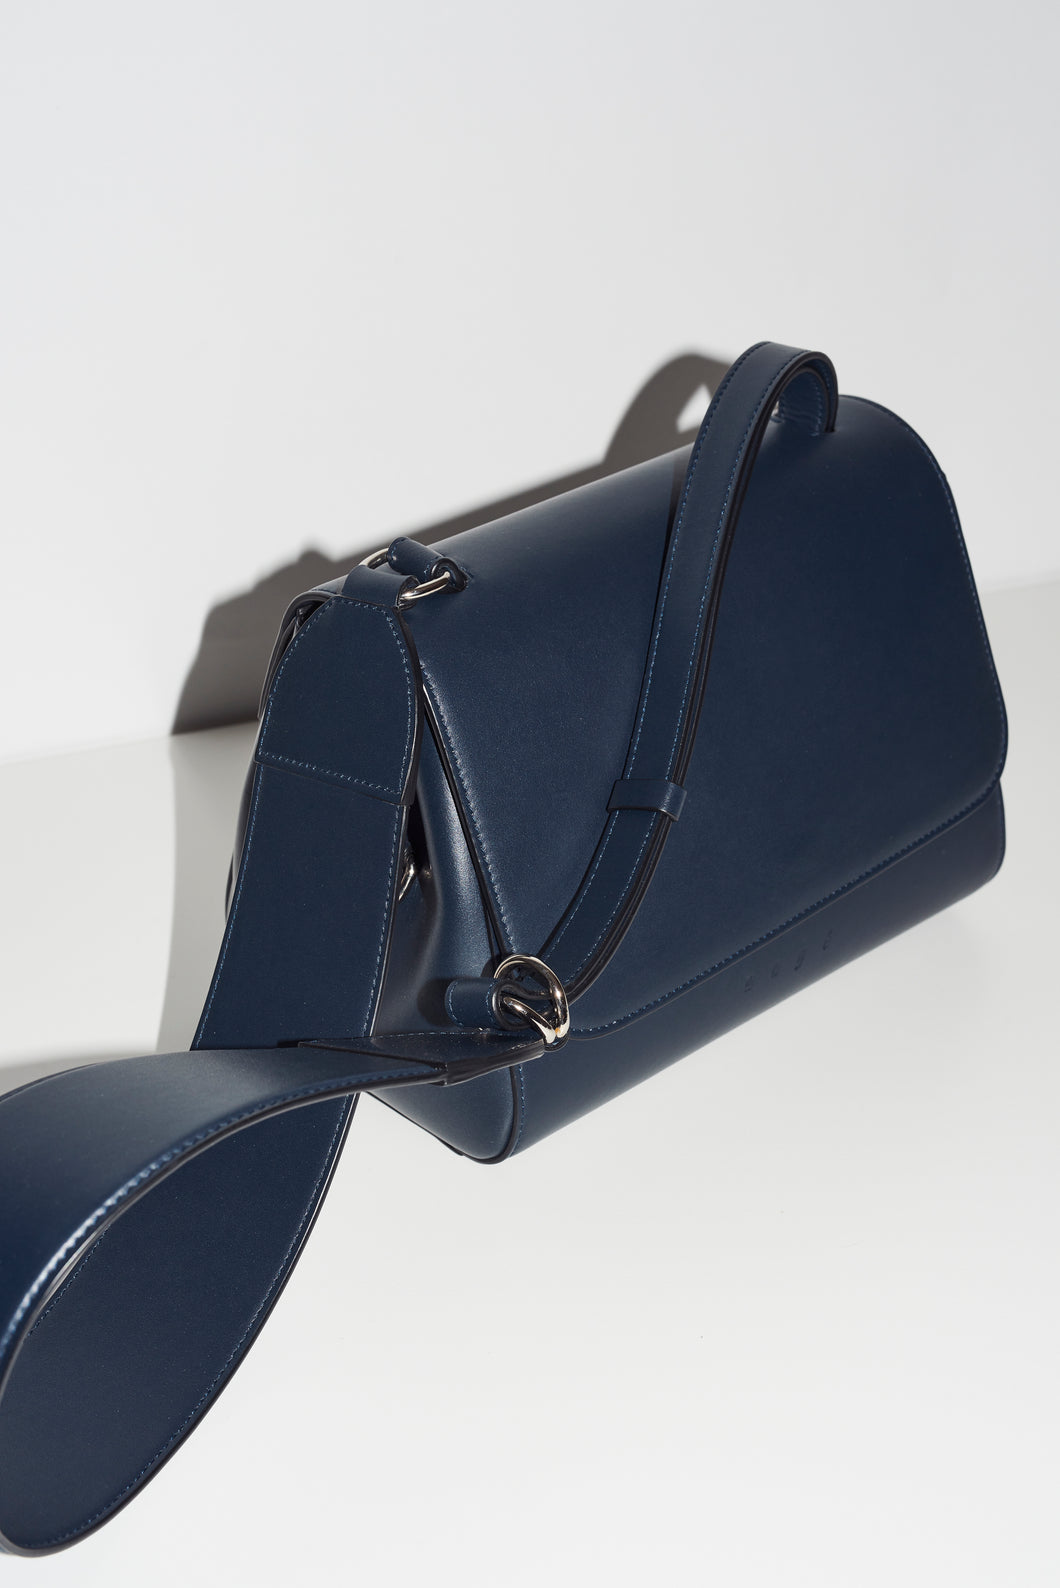 navy cross-body